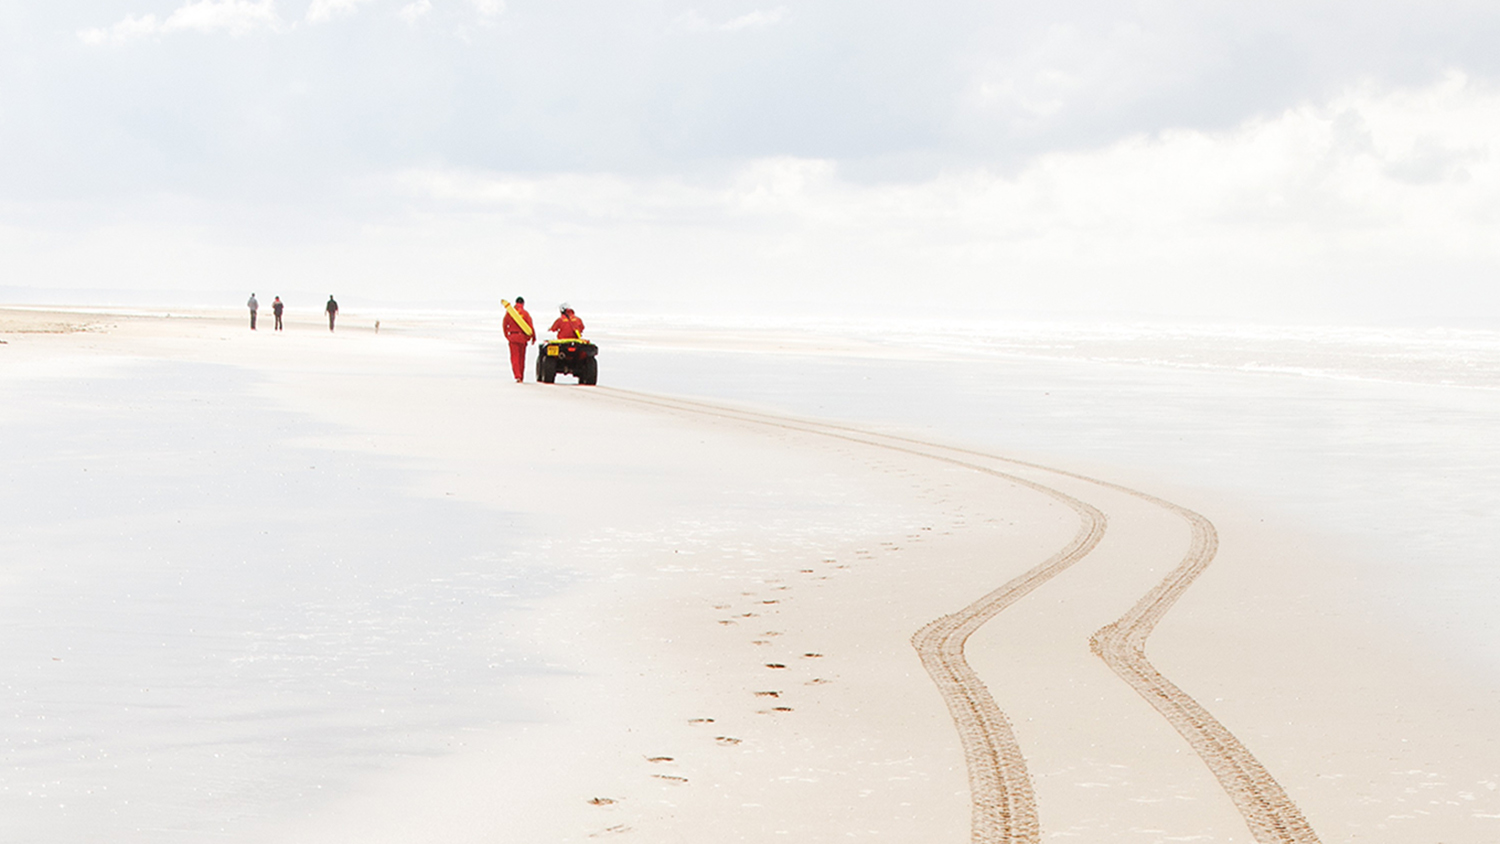 Tracks left in the wet sand by an RNLI lifeguard's all-terrain vehicle (ATV)